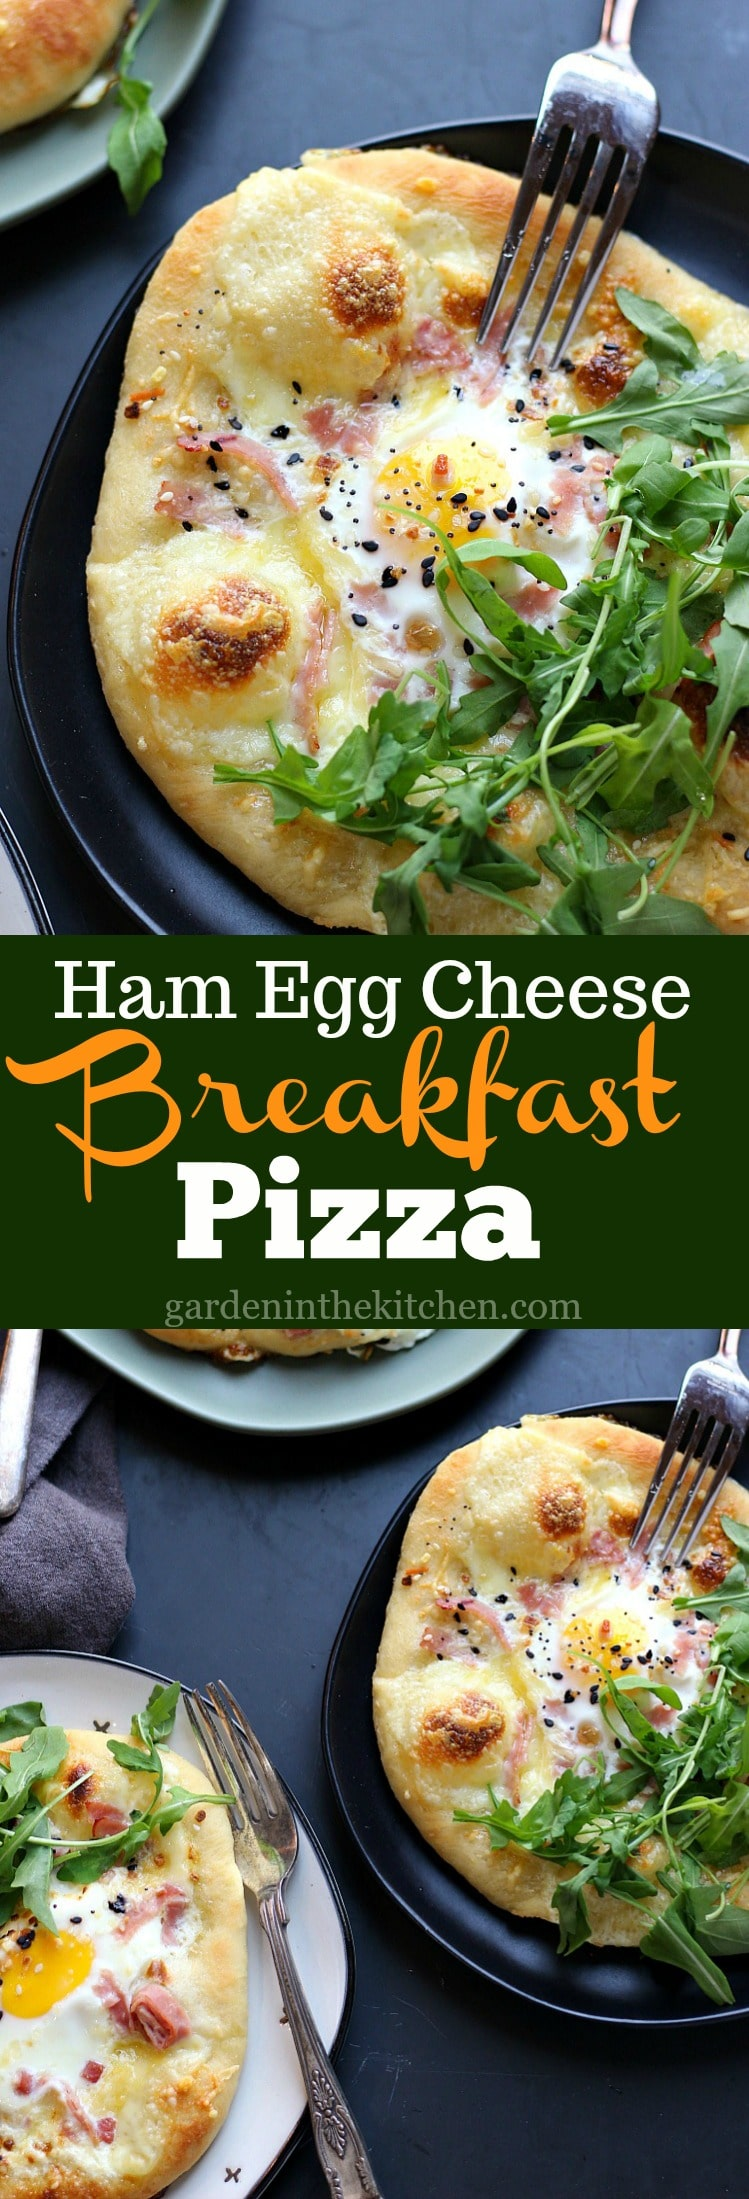 Ham Egg Cheese Breakfast Pizza